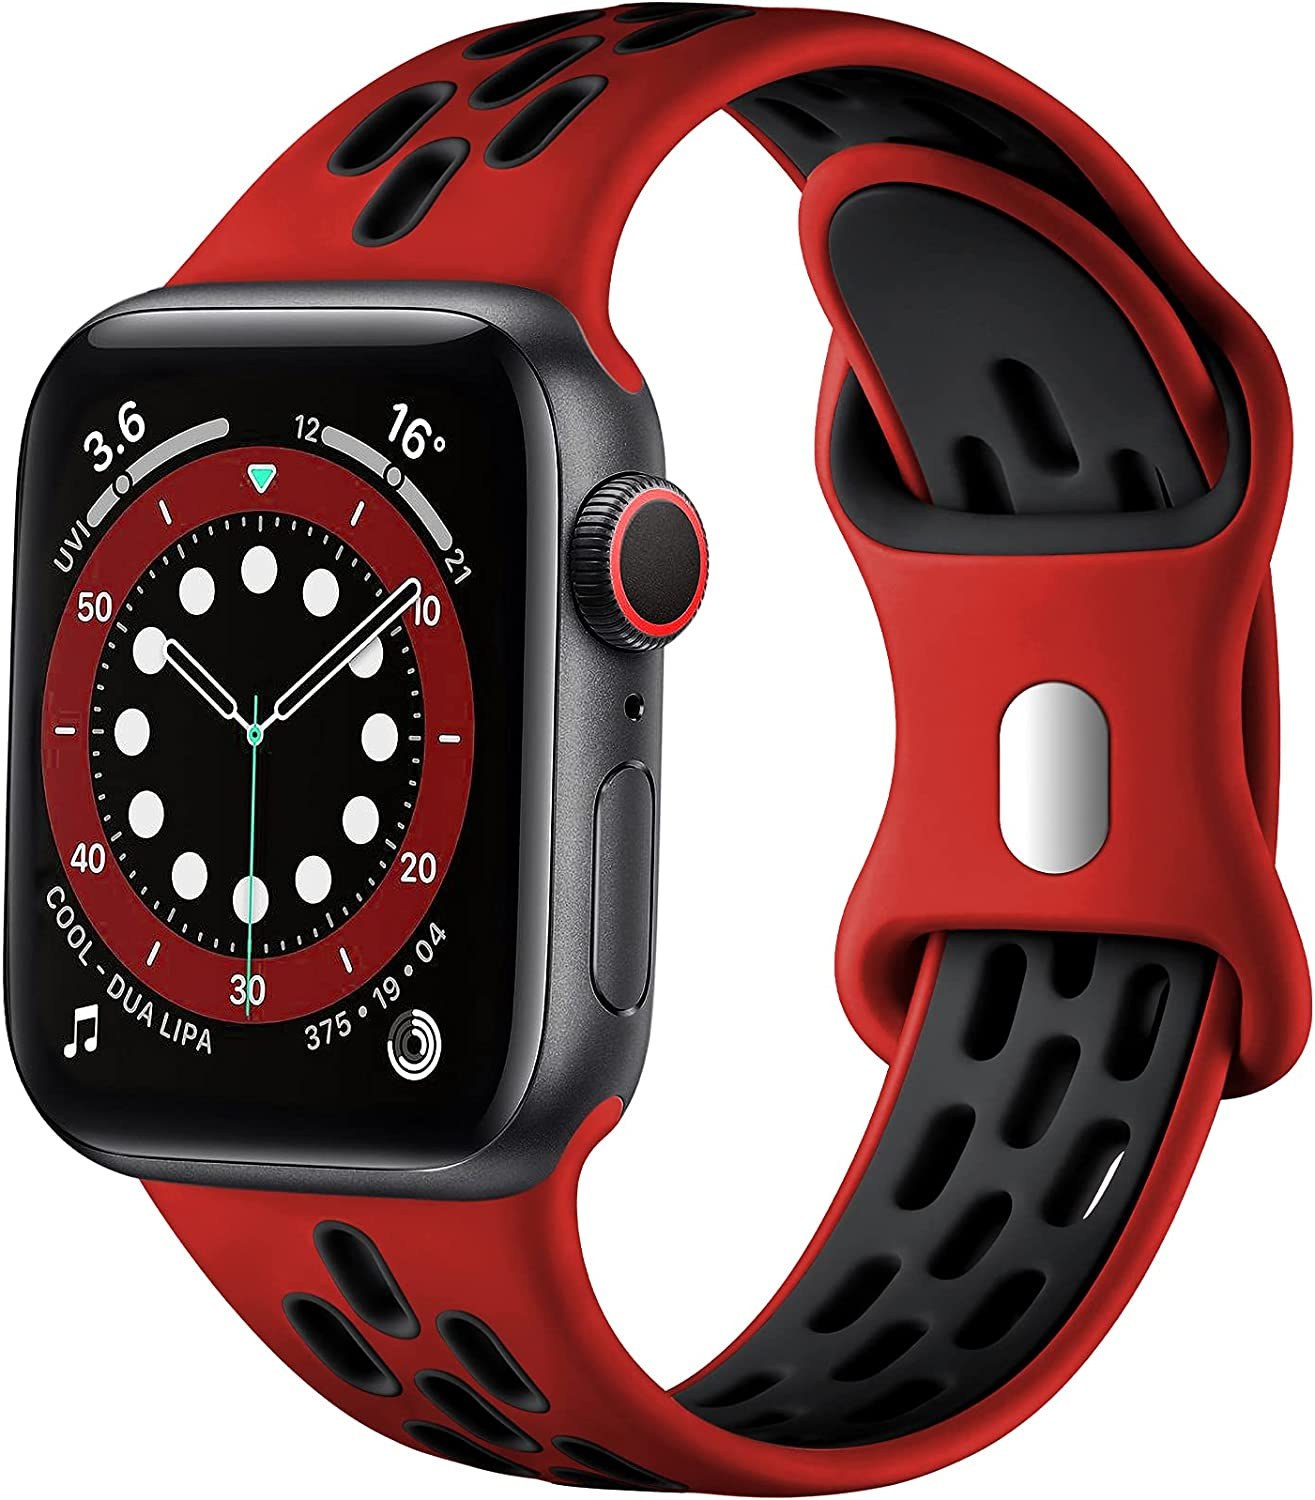 Lerobo Compatible with Apple Watch Band 44mm 42mm 45mm 41mm 40mm 38mm Men Women,Soft Silicone Breathable Sport Bands for Apple Watch SE iWatch Series 7 6 5 4 3 2 1 Replacement Watch Band,Red Black